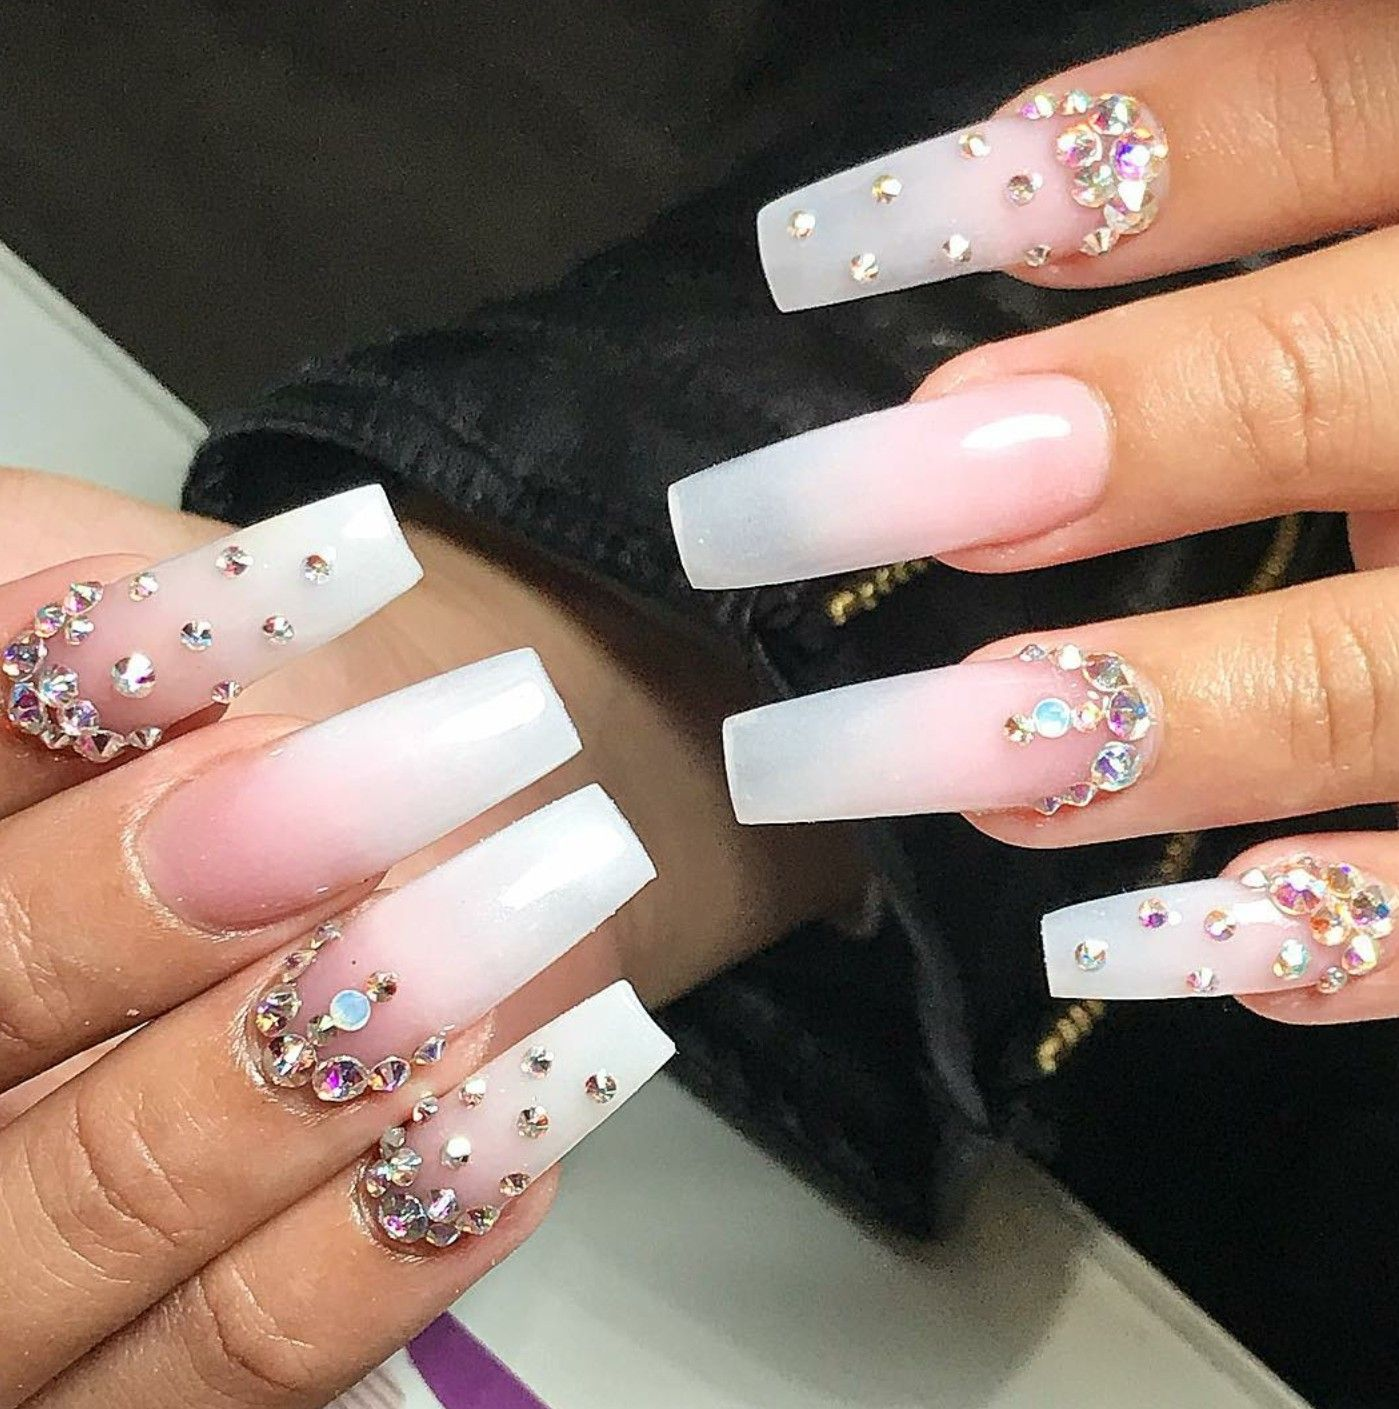 Long Square Nails Nails With Rhinestones Ombre Nails Pink And White Nails Acrylic Nails Long Square Nails Long Square Acrylic Nails Rhinestone Nails